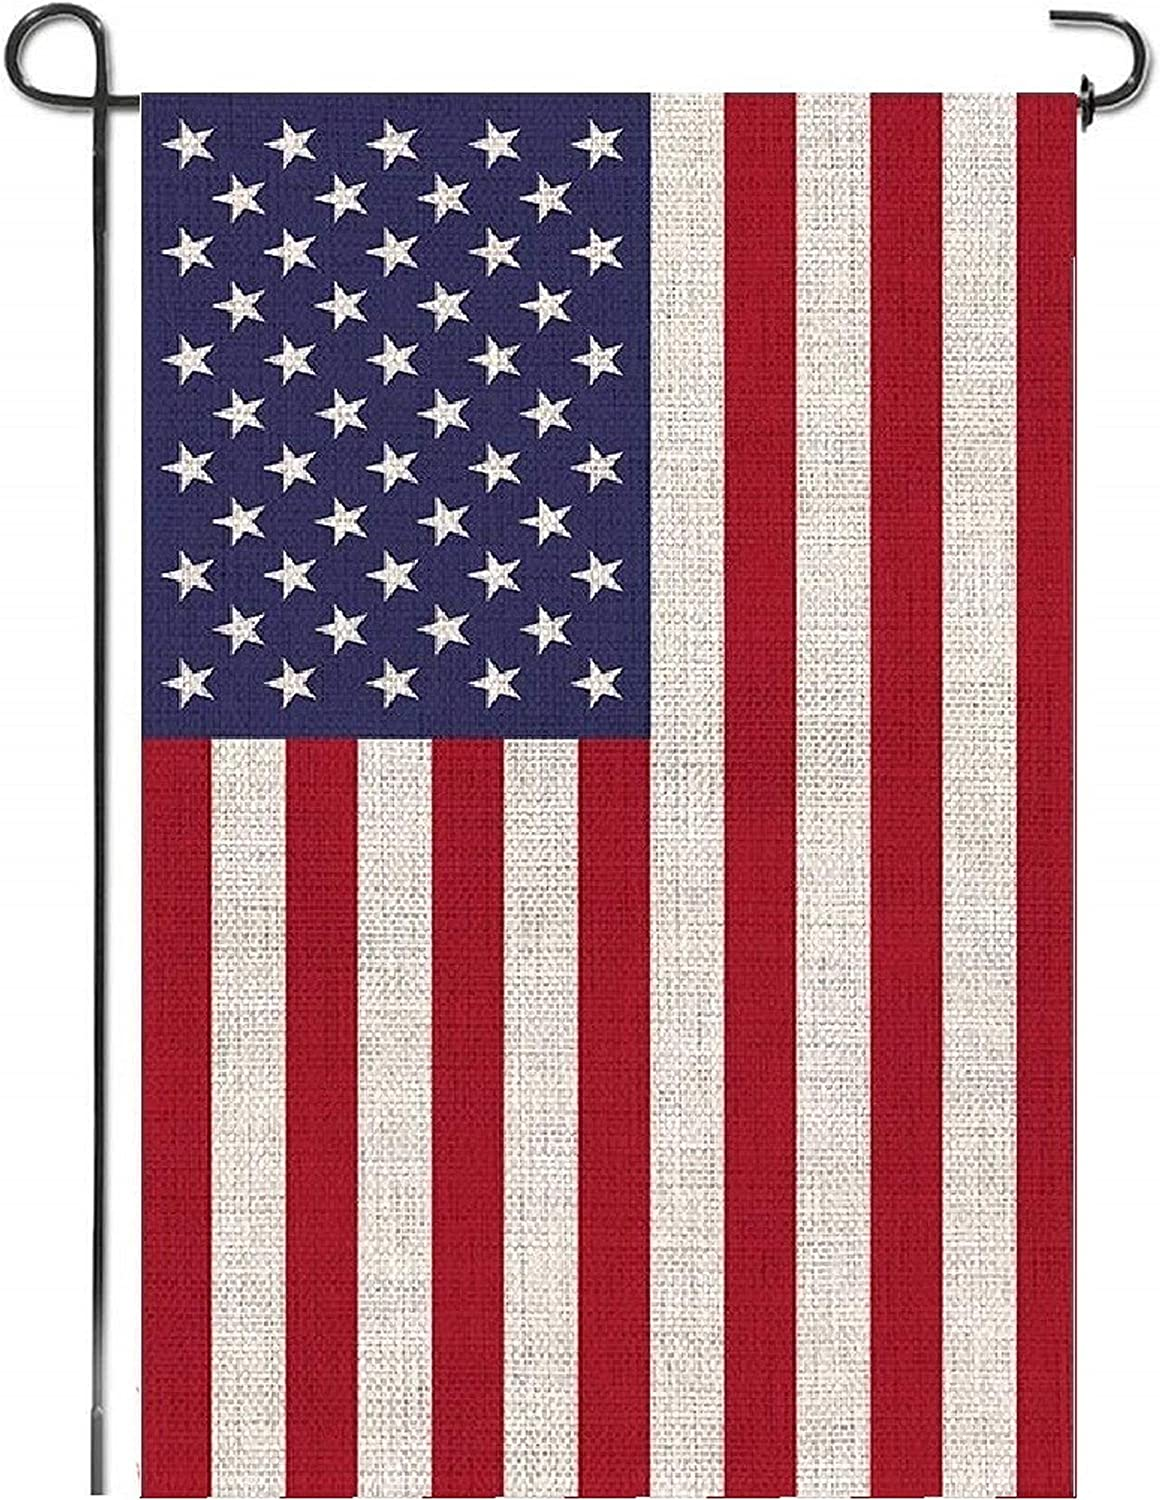 "Mogarden American Garden Flag, Double Sided, 12.5"" x 18"", Top-Level Thick Burlap USA Yard Flag"